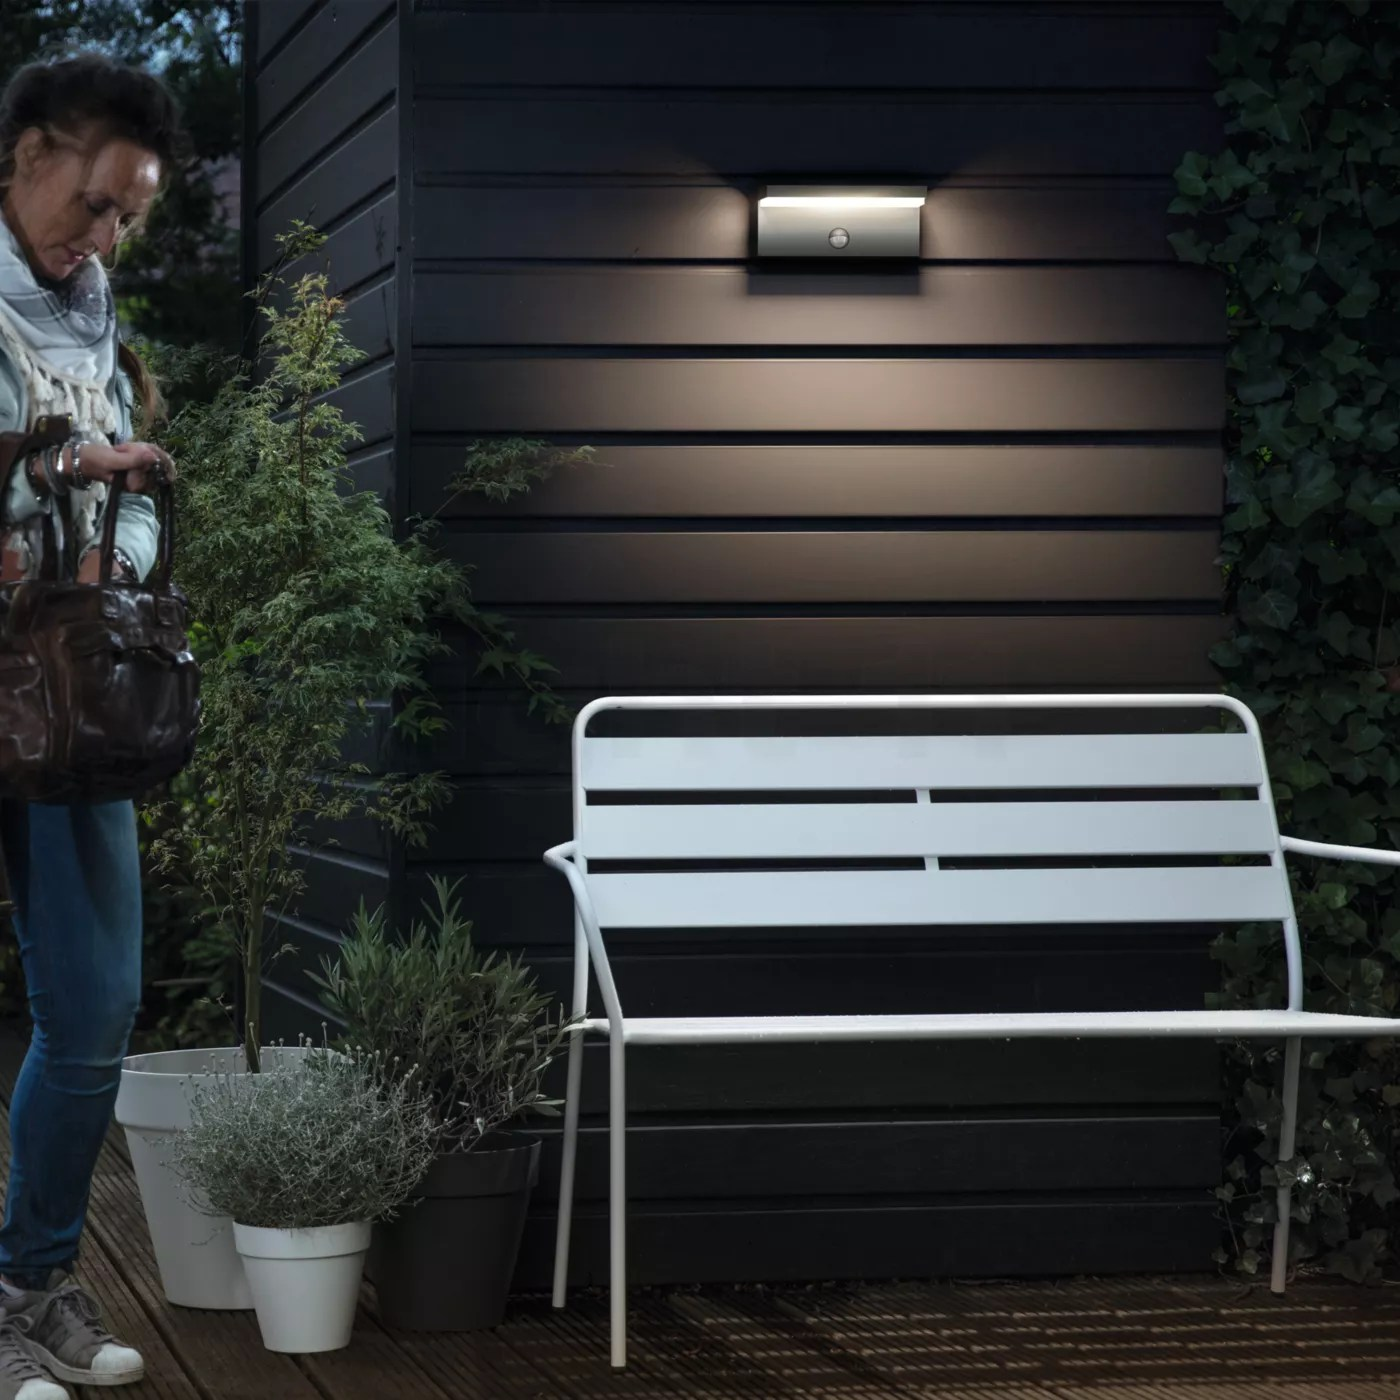 Philips Mygarden Outdoor Wall Light Buy Philips Mygarden Bustan Wall Light With Motion Detector Led At